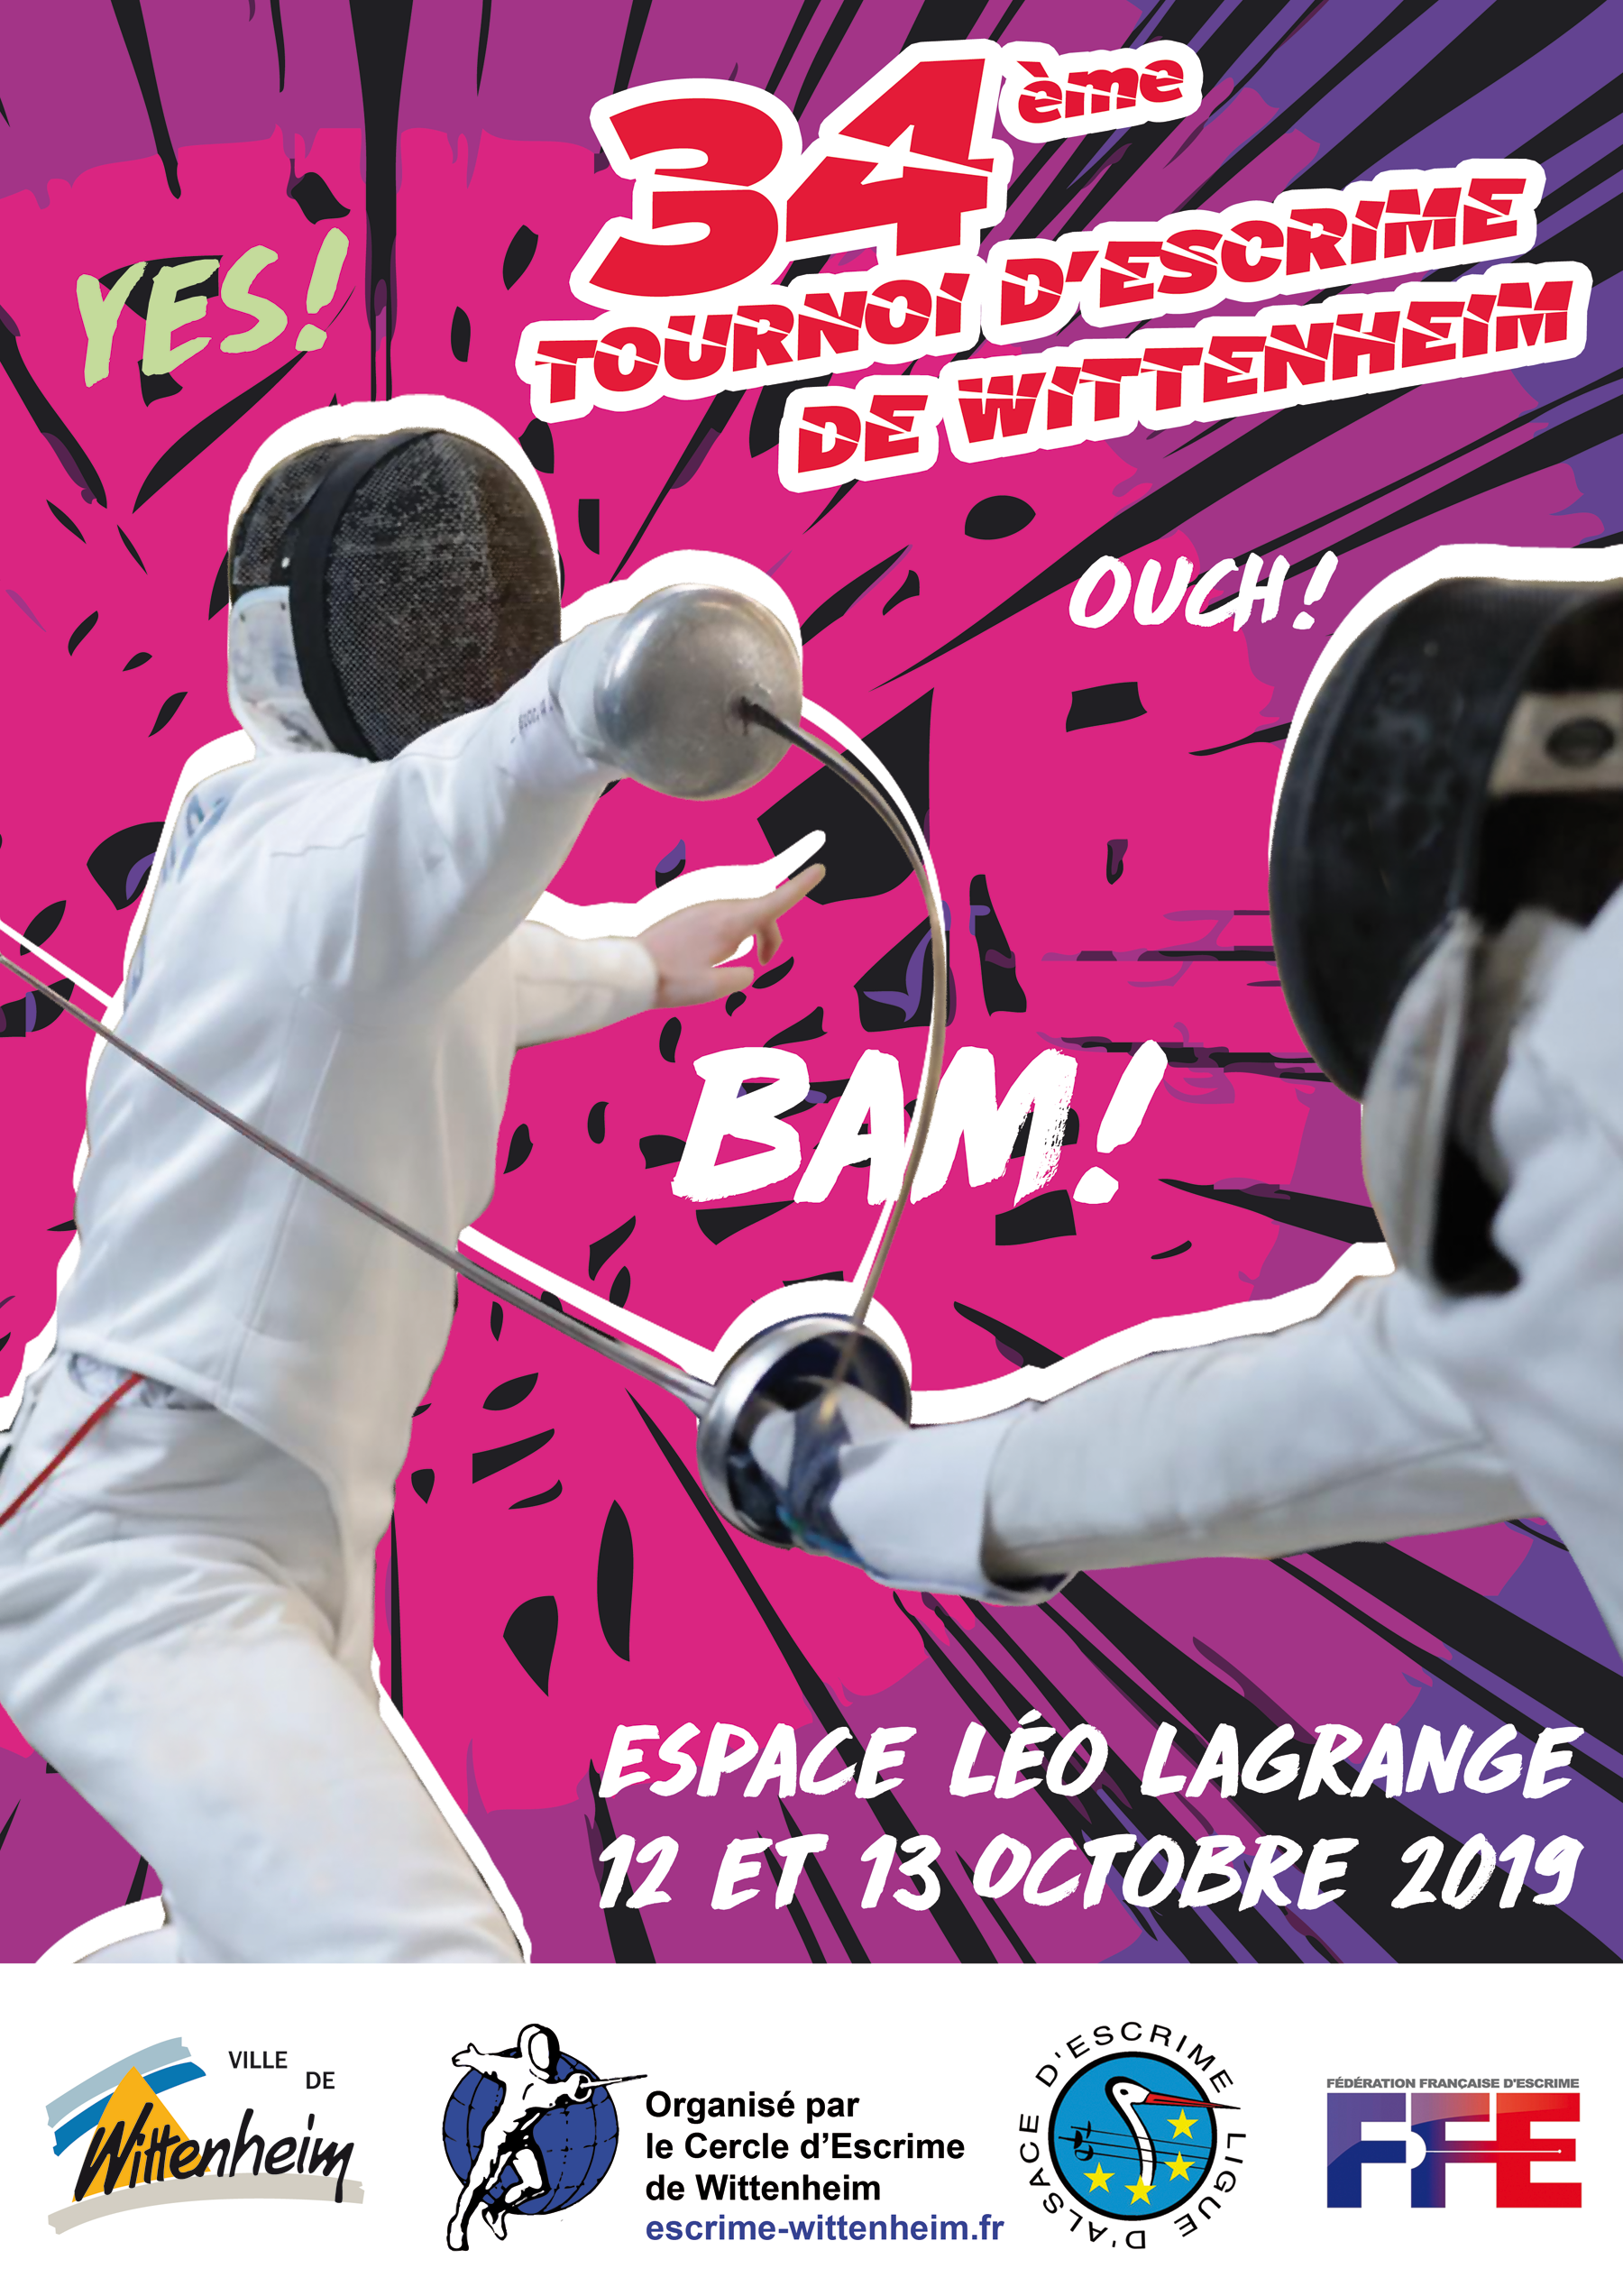 Affiche 34e tournoi international d'escrime de Wittenheim